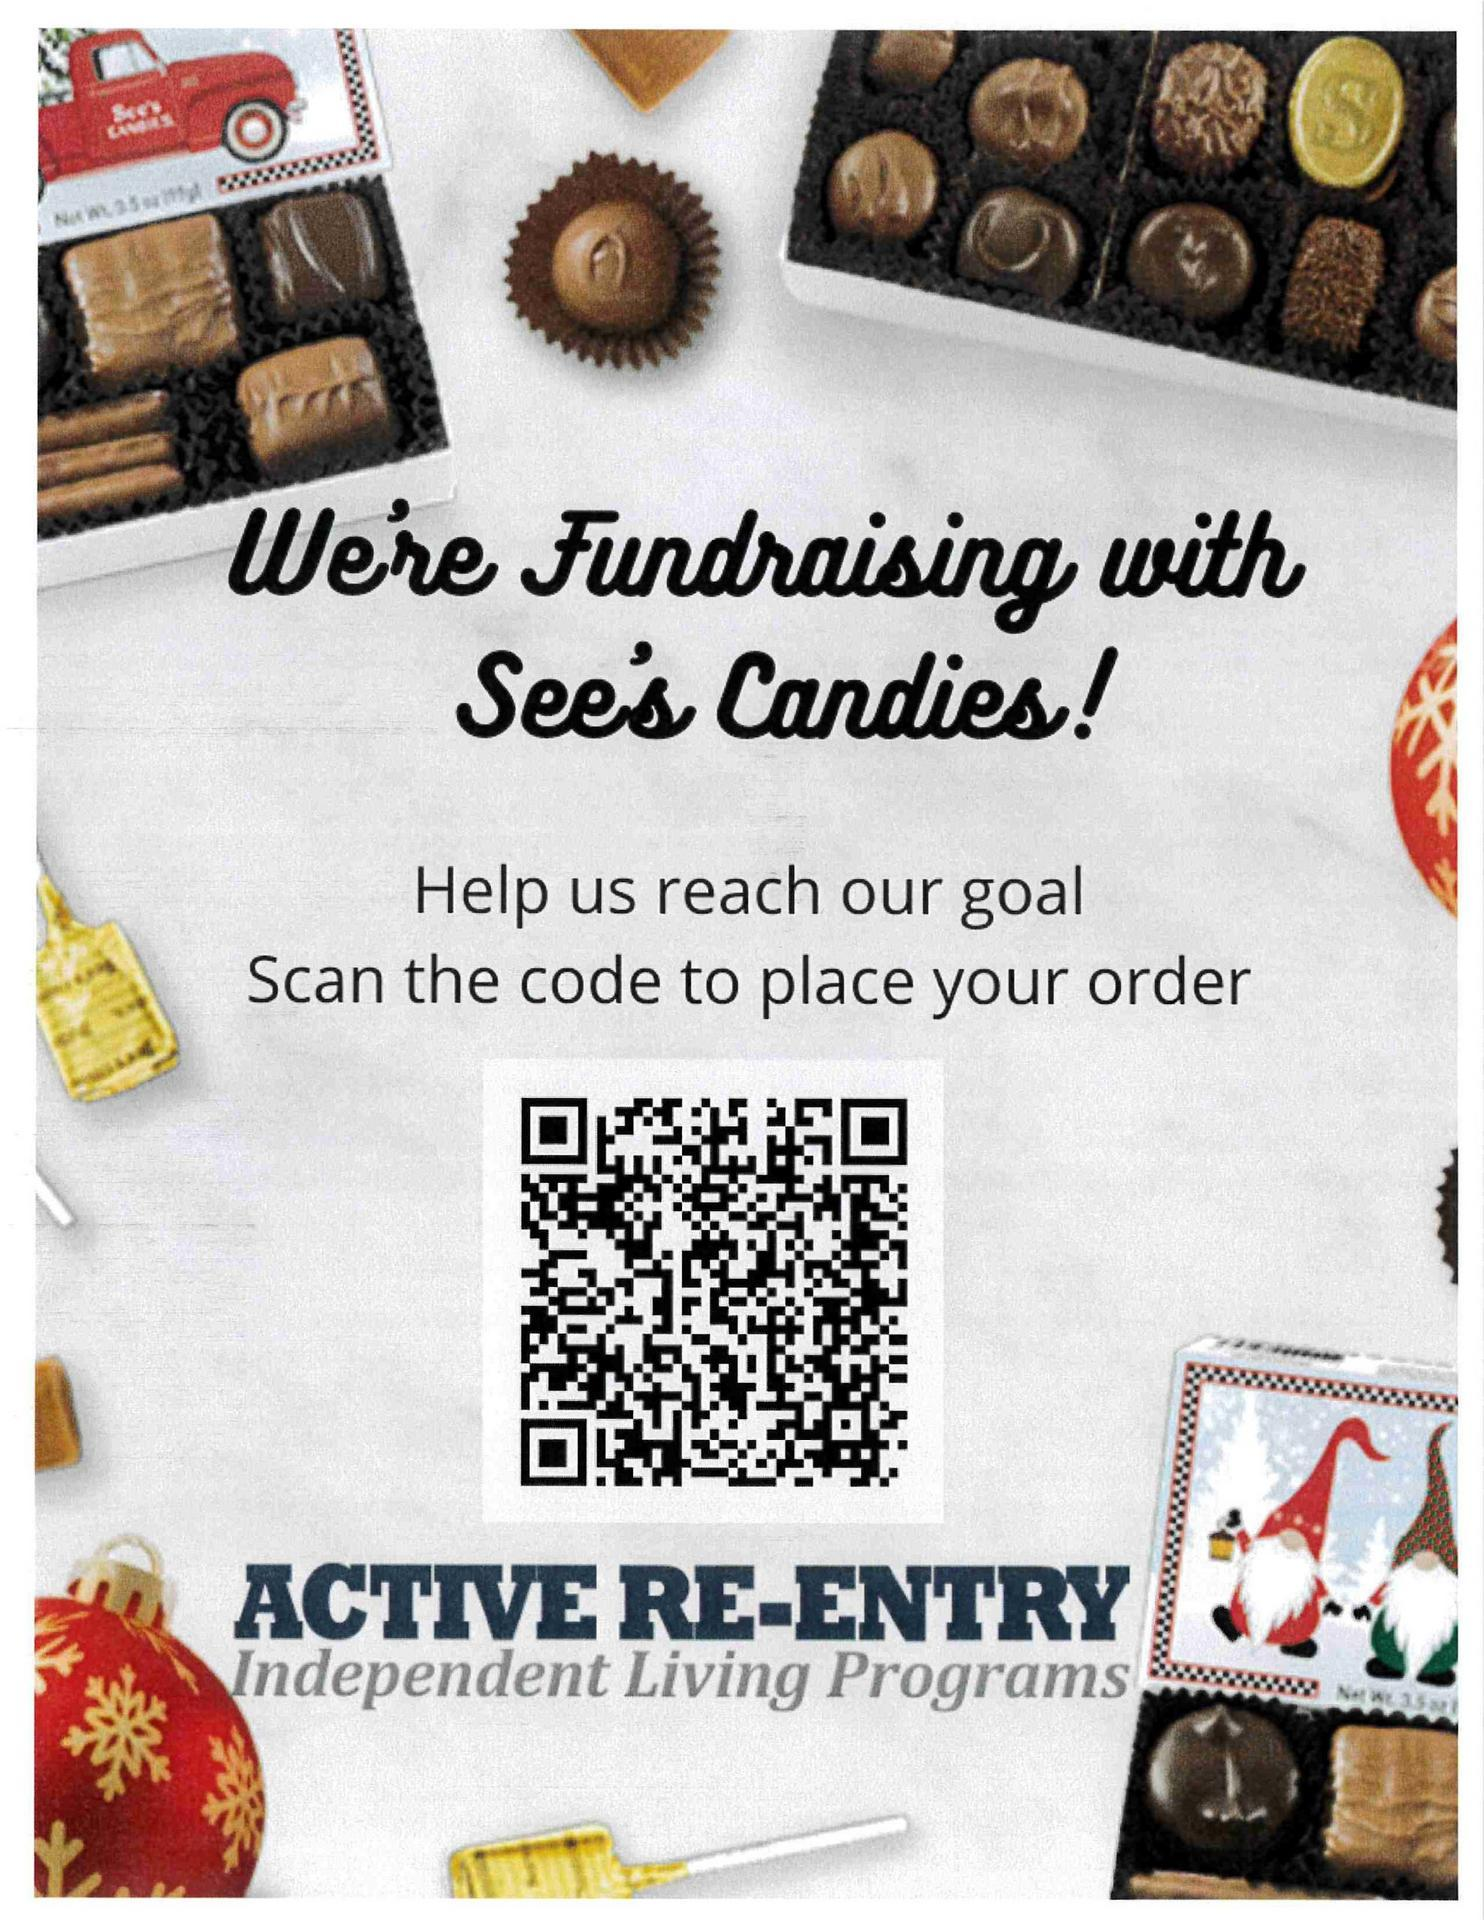 Sees-Candy-Fundraiser-2021-copy-scaled.jpg